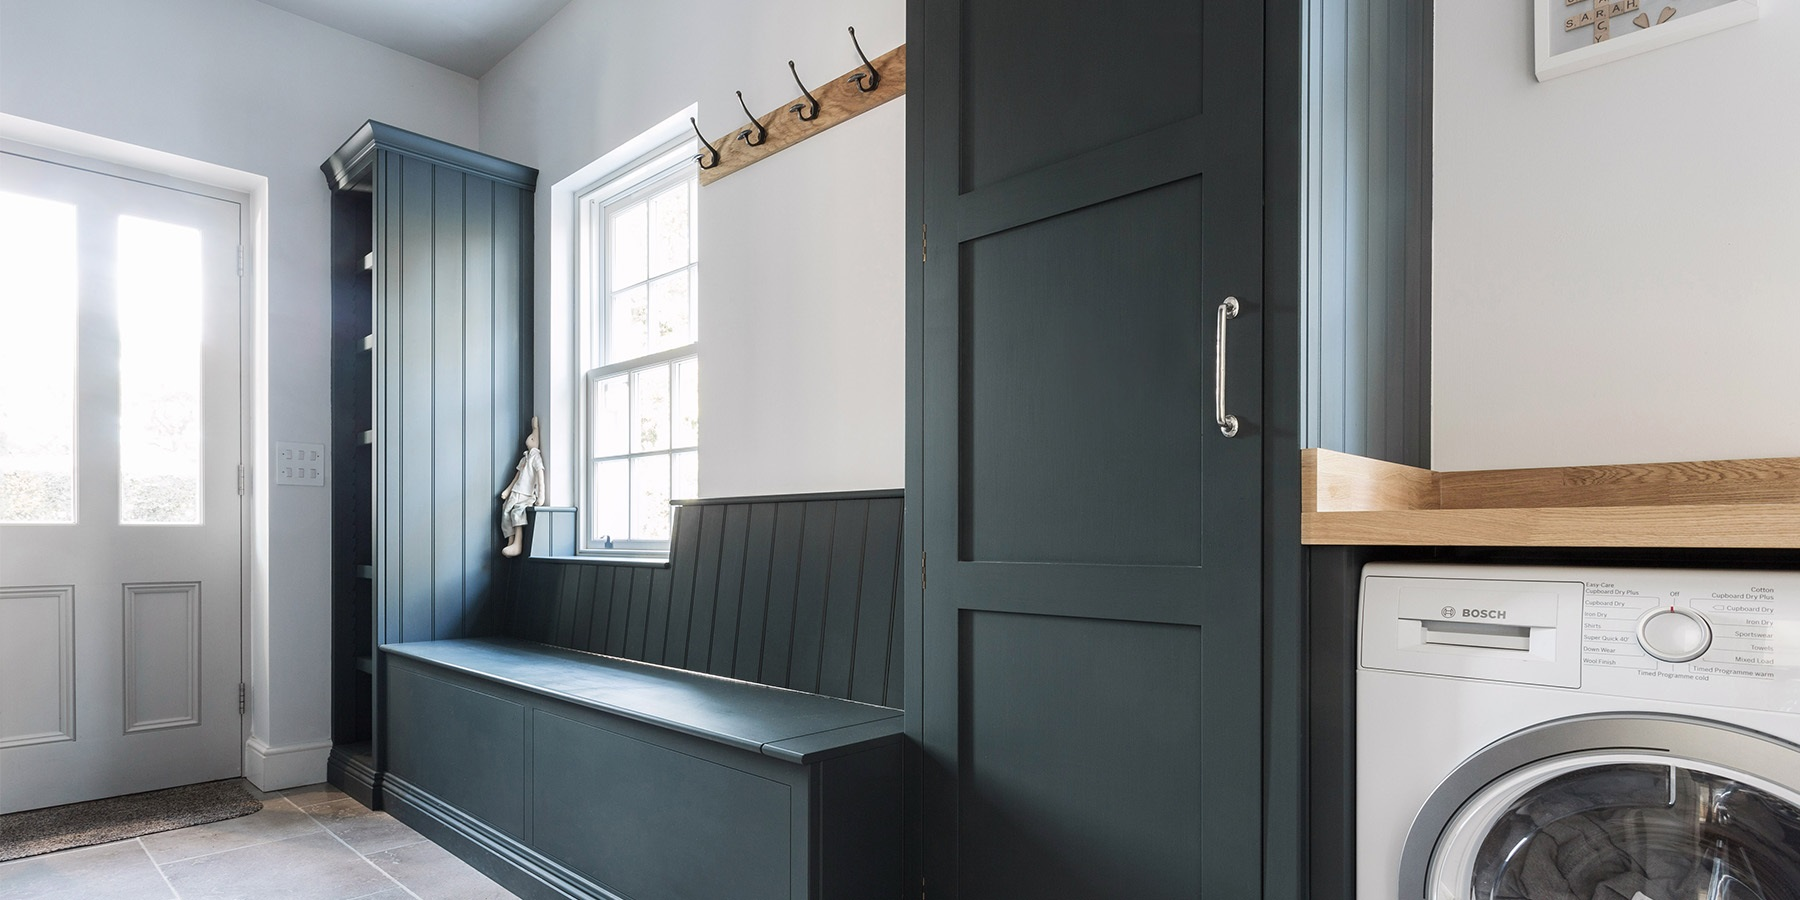 Handmade Utility Room & Bootroom Storage  - Burlanes handmade utility room and bootroom storage solutions with lift up banquette seating.